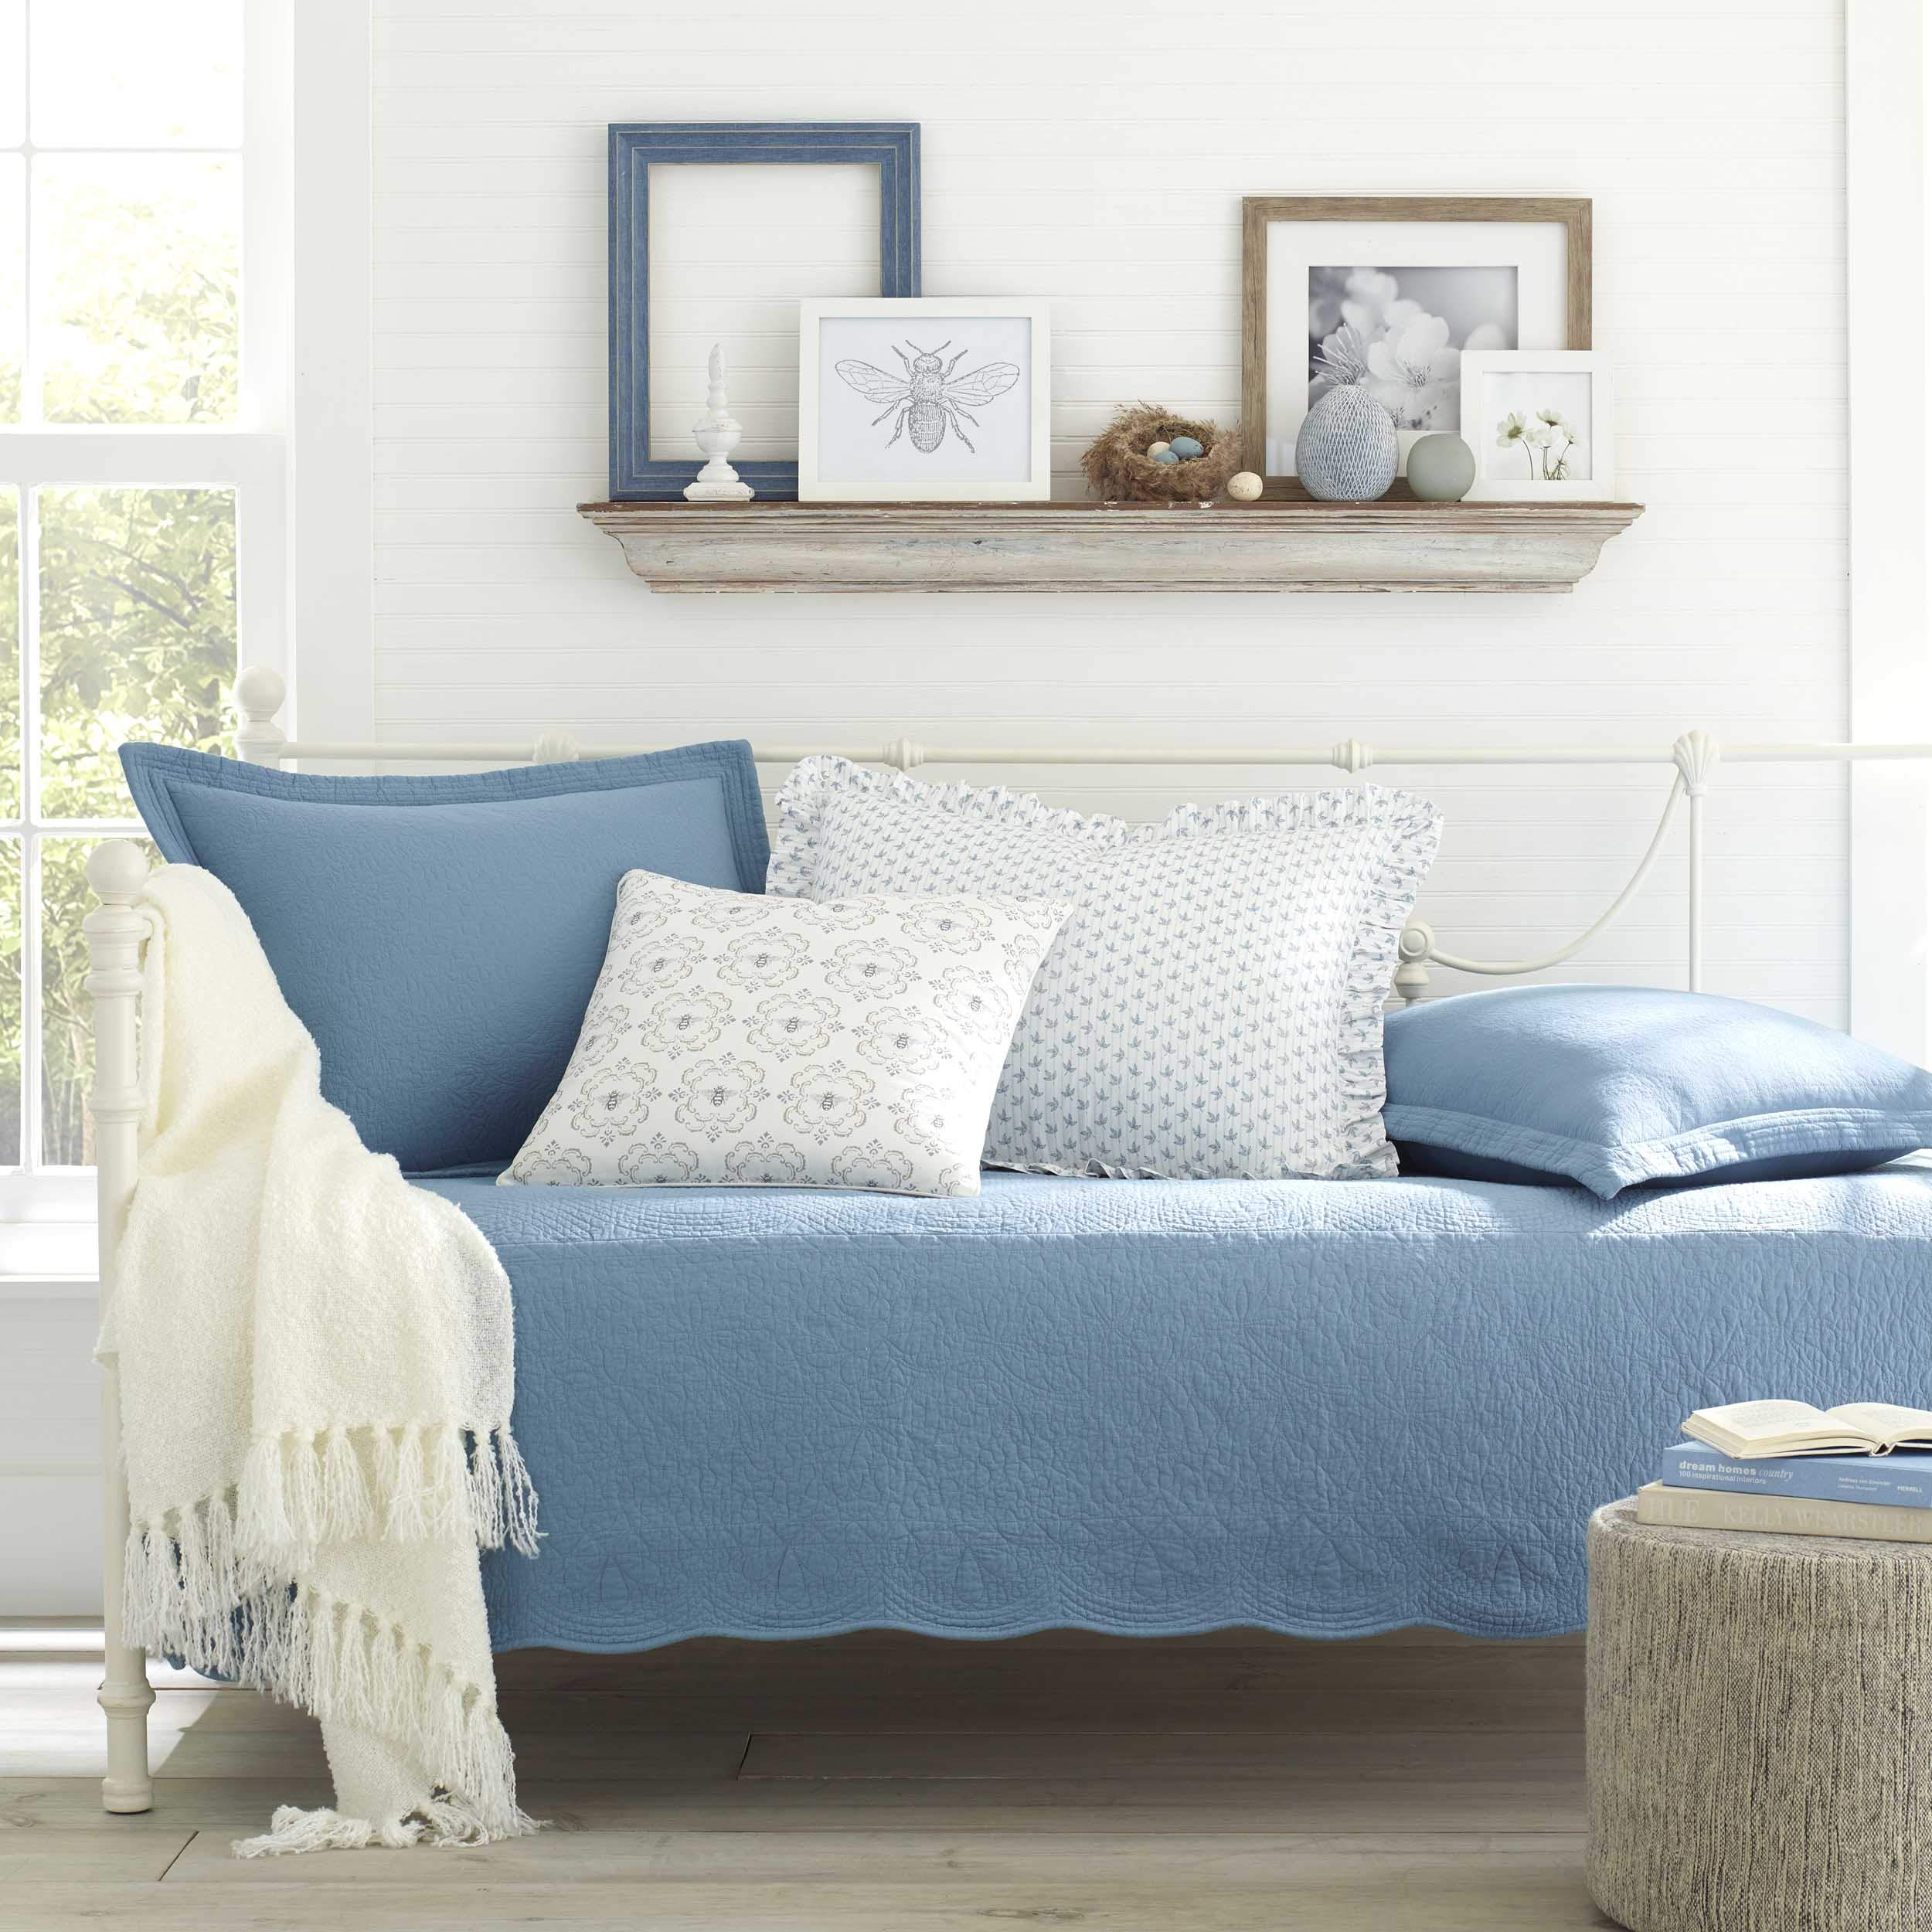 Stone Cottage Trellis Daybed Set, 39x75, Blue by Stone Cottage (Image #1)